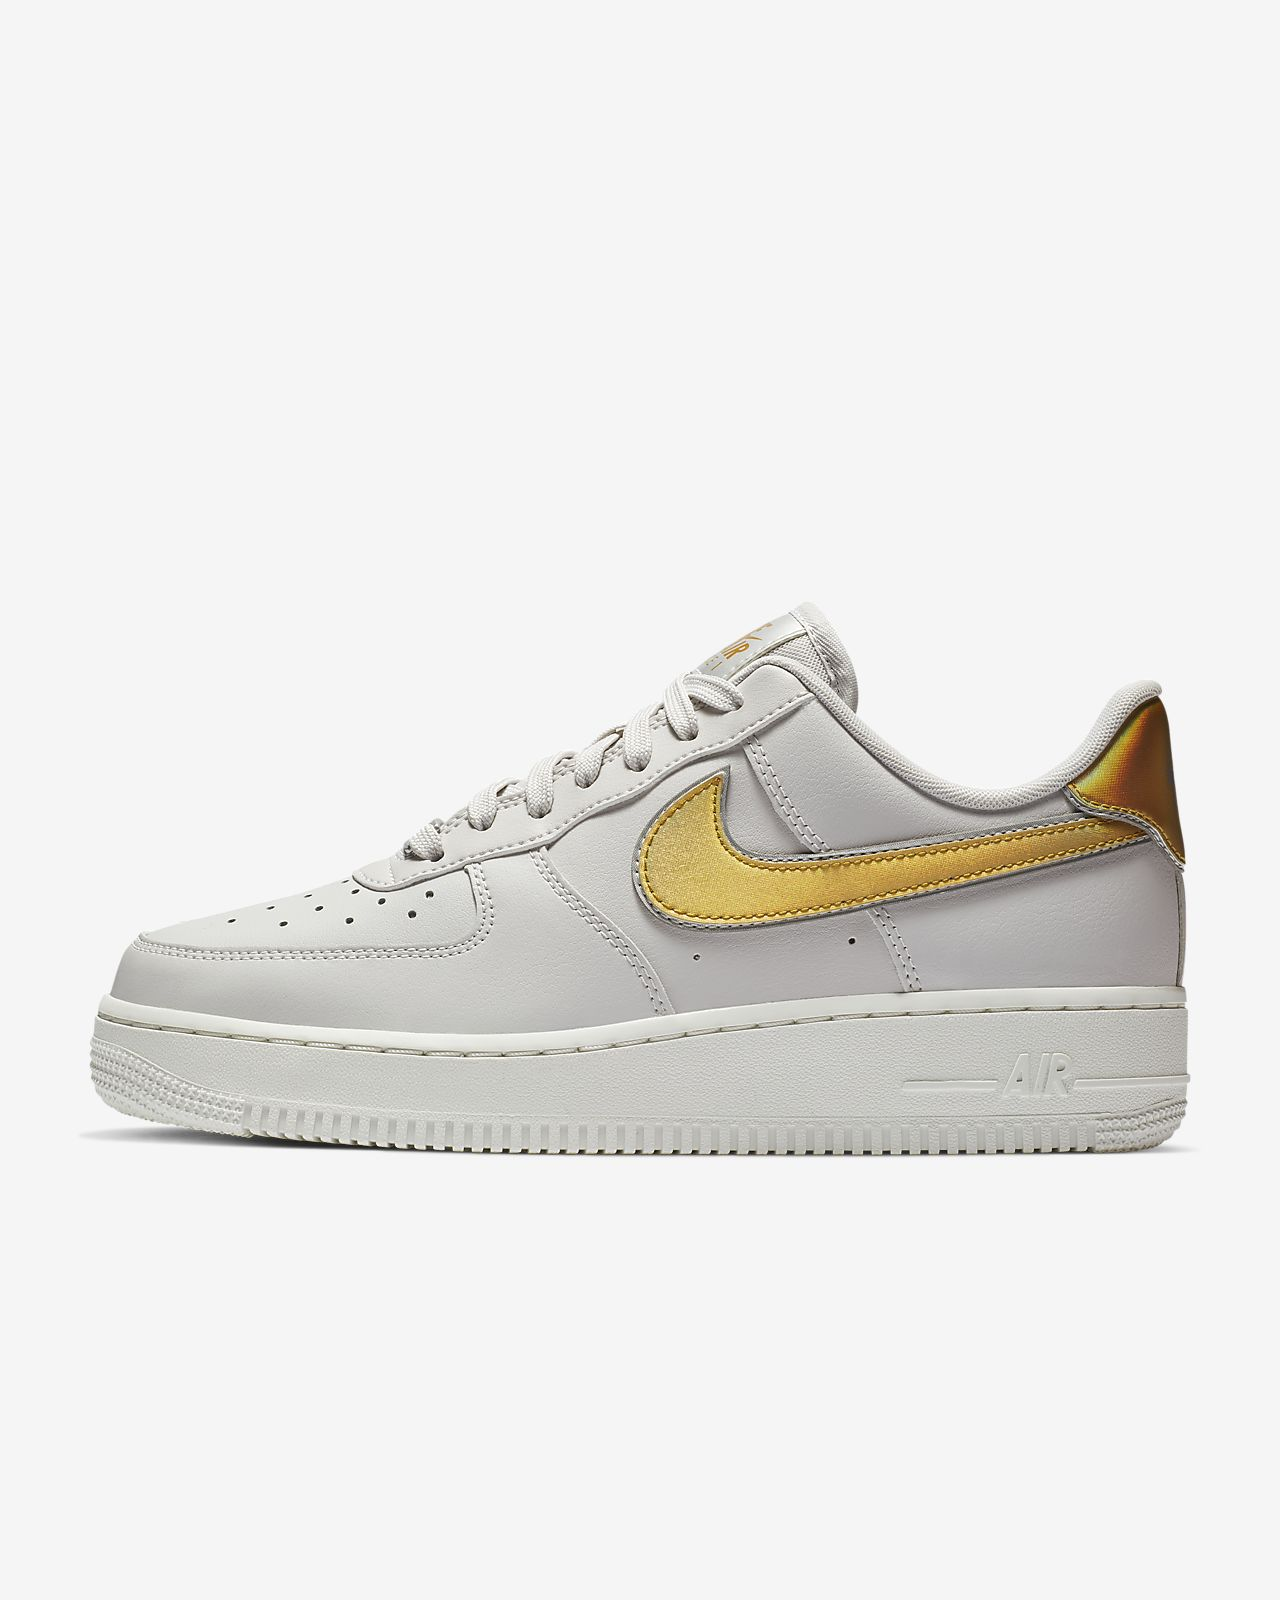 the latest e14a8 57cbc ... Chaussure Nike Air Force 1  07 Metallic pour Femme